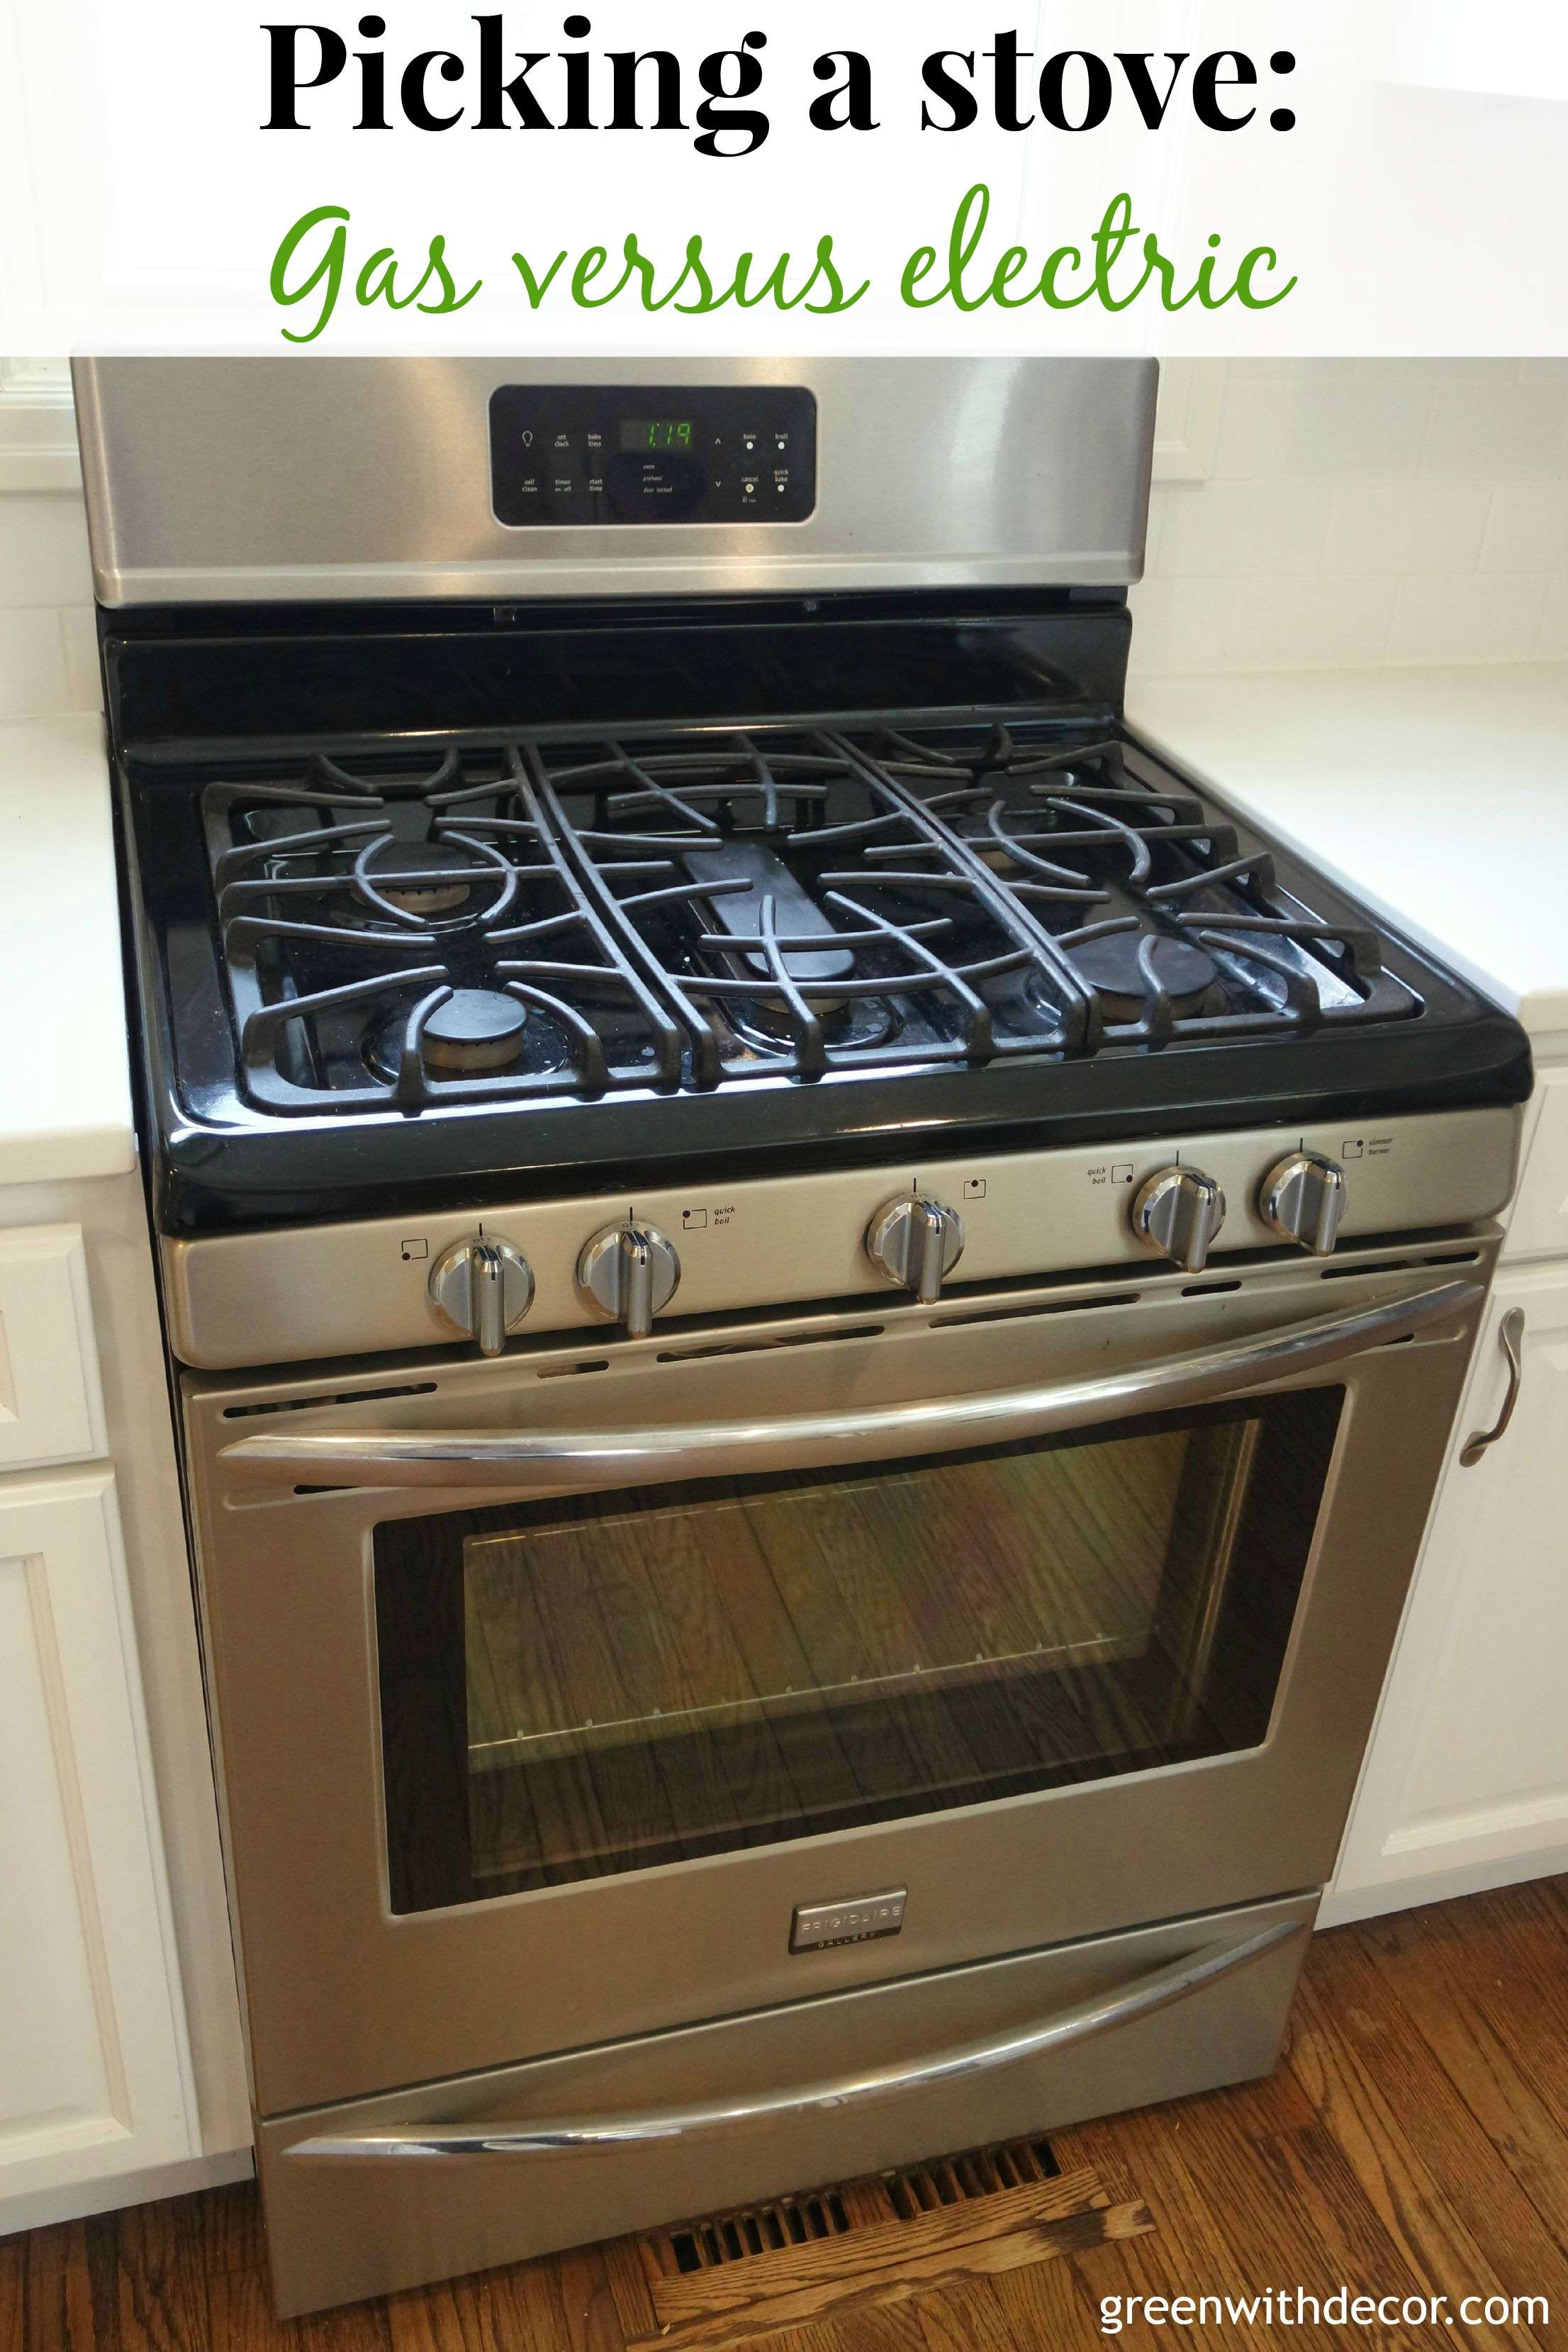 Tips for picking kitchen appliances. There are some great ideas here that I hadn't thought of! So helpful when going through a kitchen renovation! | Green With Decor